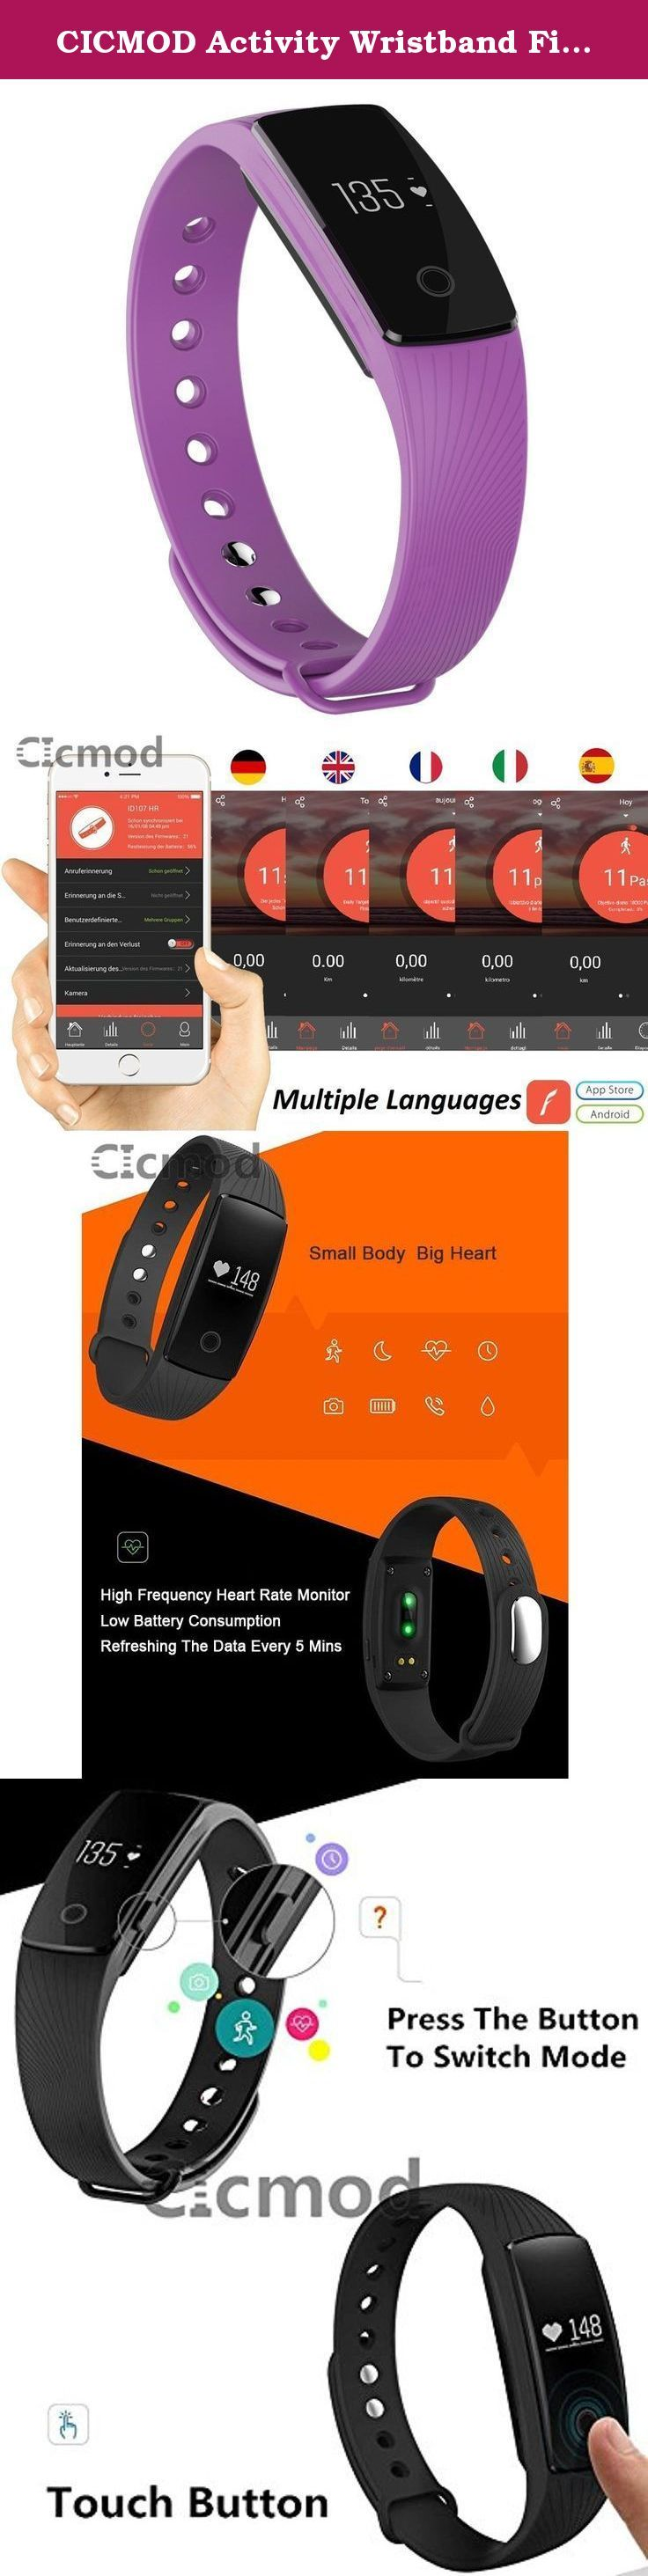 CICMOD Activity Wristband Fitness Tracker with HR Heart Rate Monitor, Touch Button, Pedometer, Sleep Monitor etc. You can use as: CICMOD fitness bracelet pedometer with heart rate monitor / Smartphone alerts / Remote camera / Sleep Tracker Main Functions touch button time and date Heart Rate Monitor (HRM) Step, Distance, Calorie counter Sleep Tracker Supports Bluetooth 4.0 Smartphone Call Notification Remote Camera Control Phone Finder etc. Working system: Android 4.3 & above and iOS 7.1…